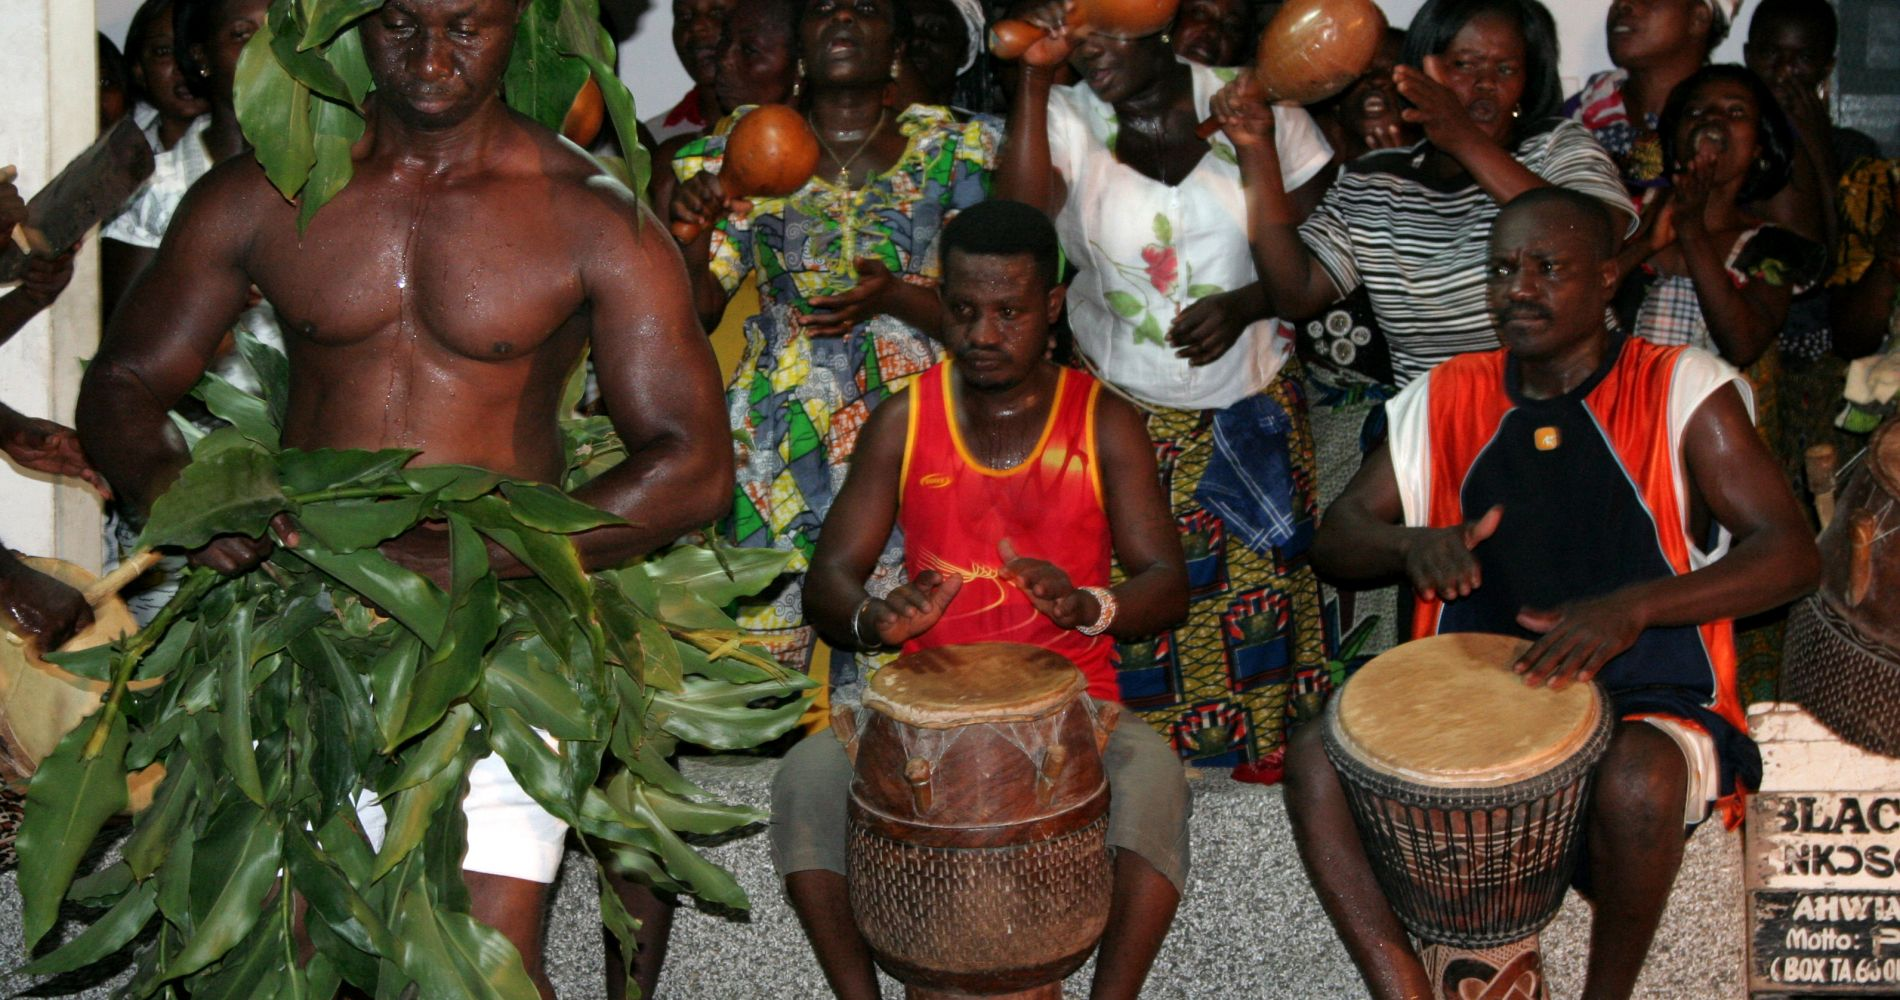 Incredible Voodoo Experience Ghana Tinggly Gifts